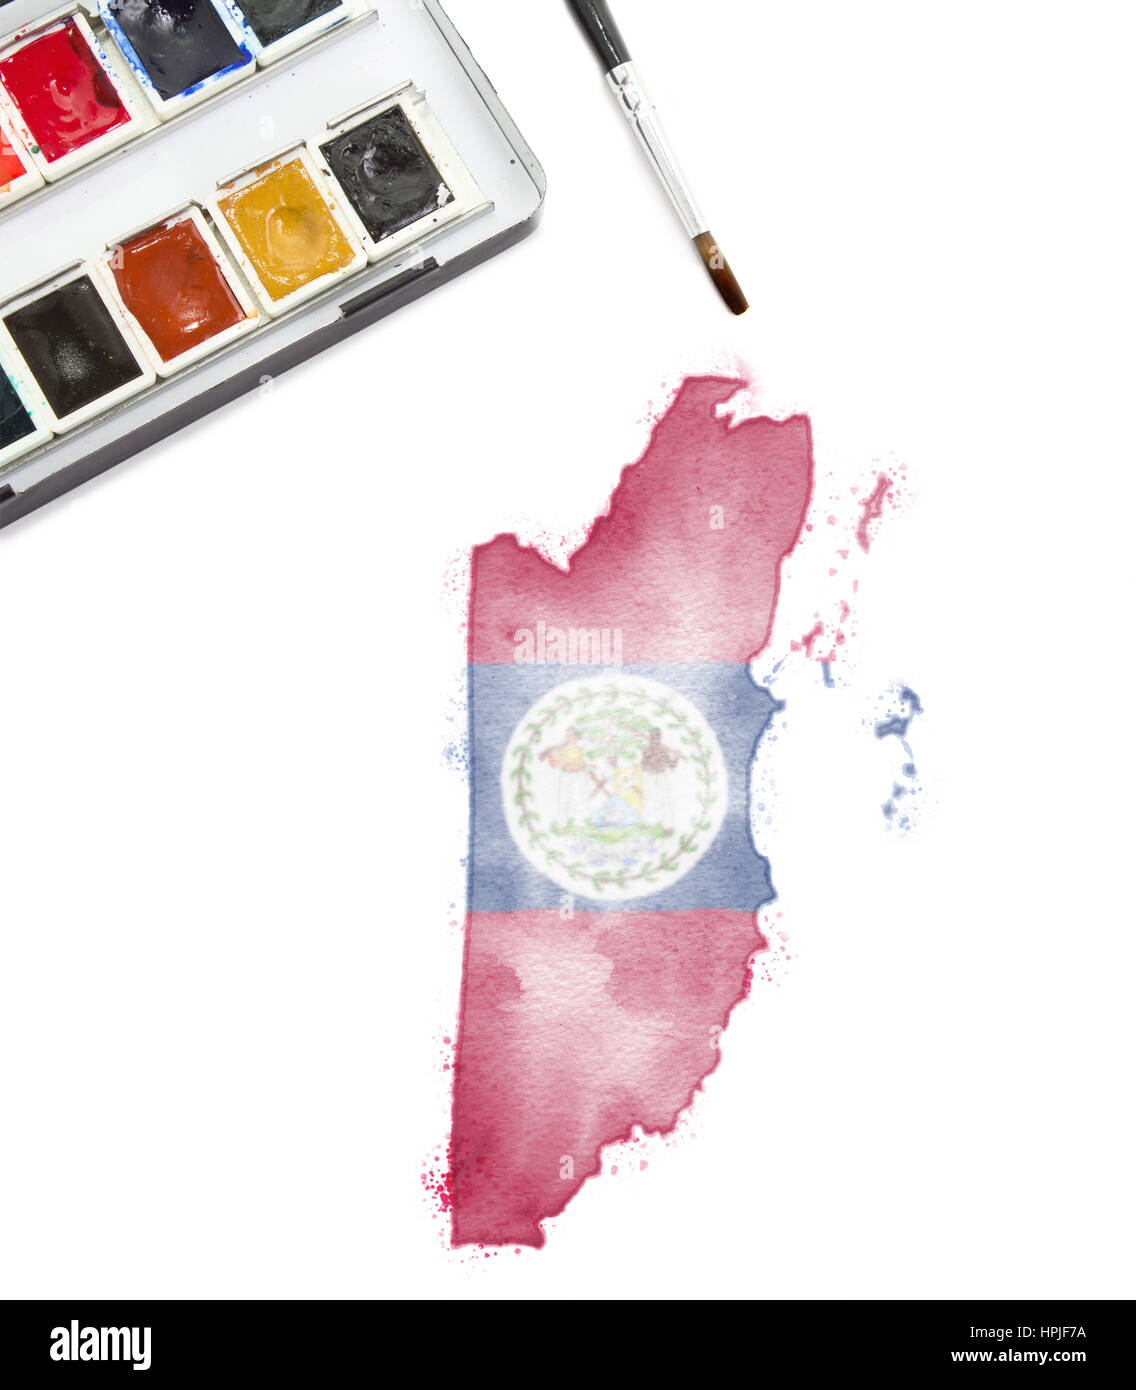 A Watercolor Painting Of Belize In The National Colors Series Stock Photo Alamy